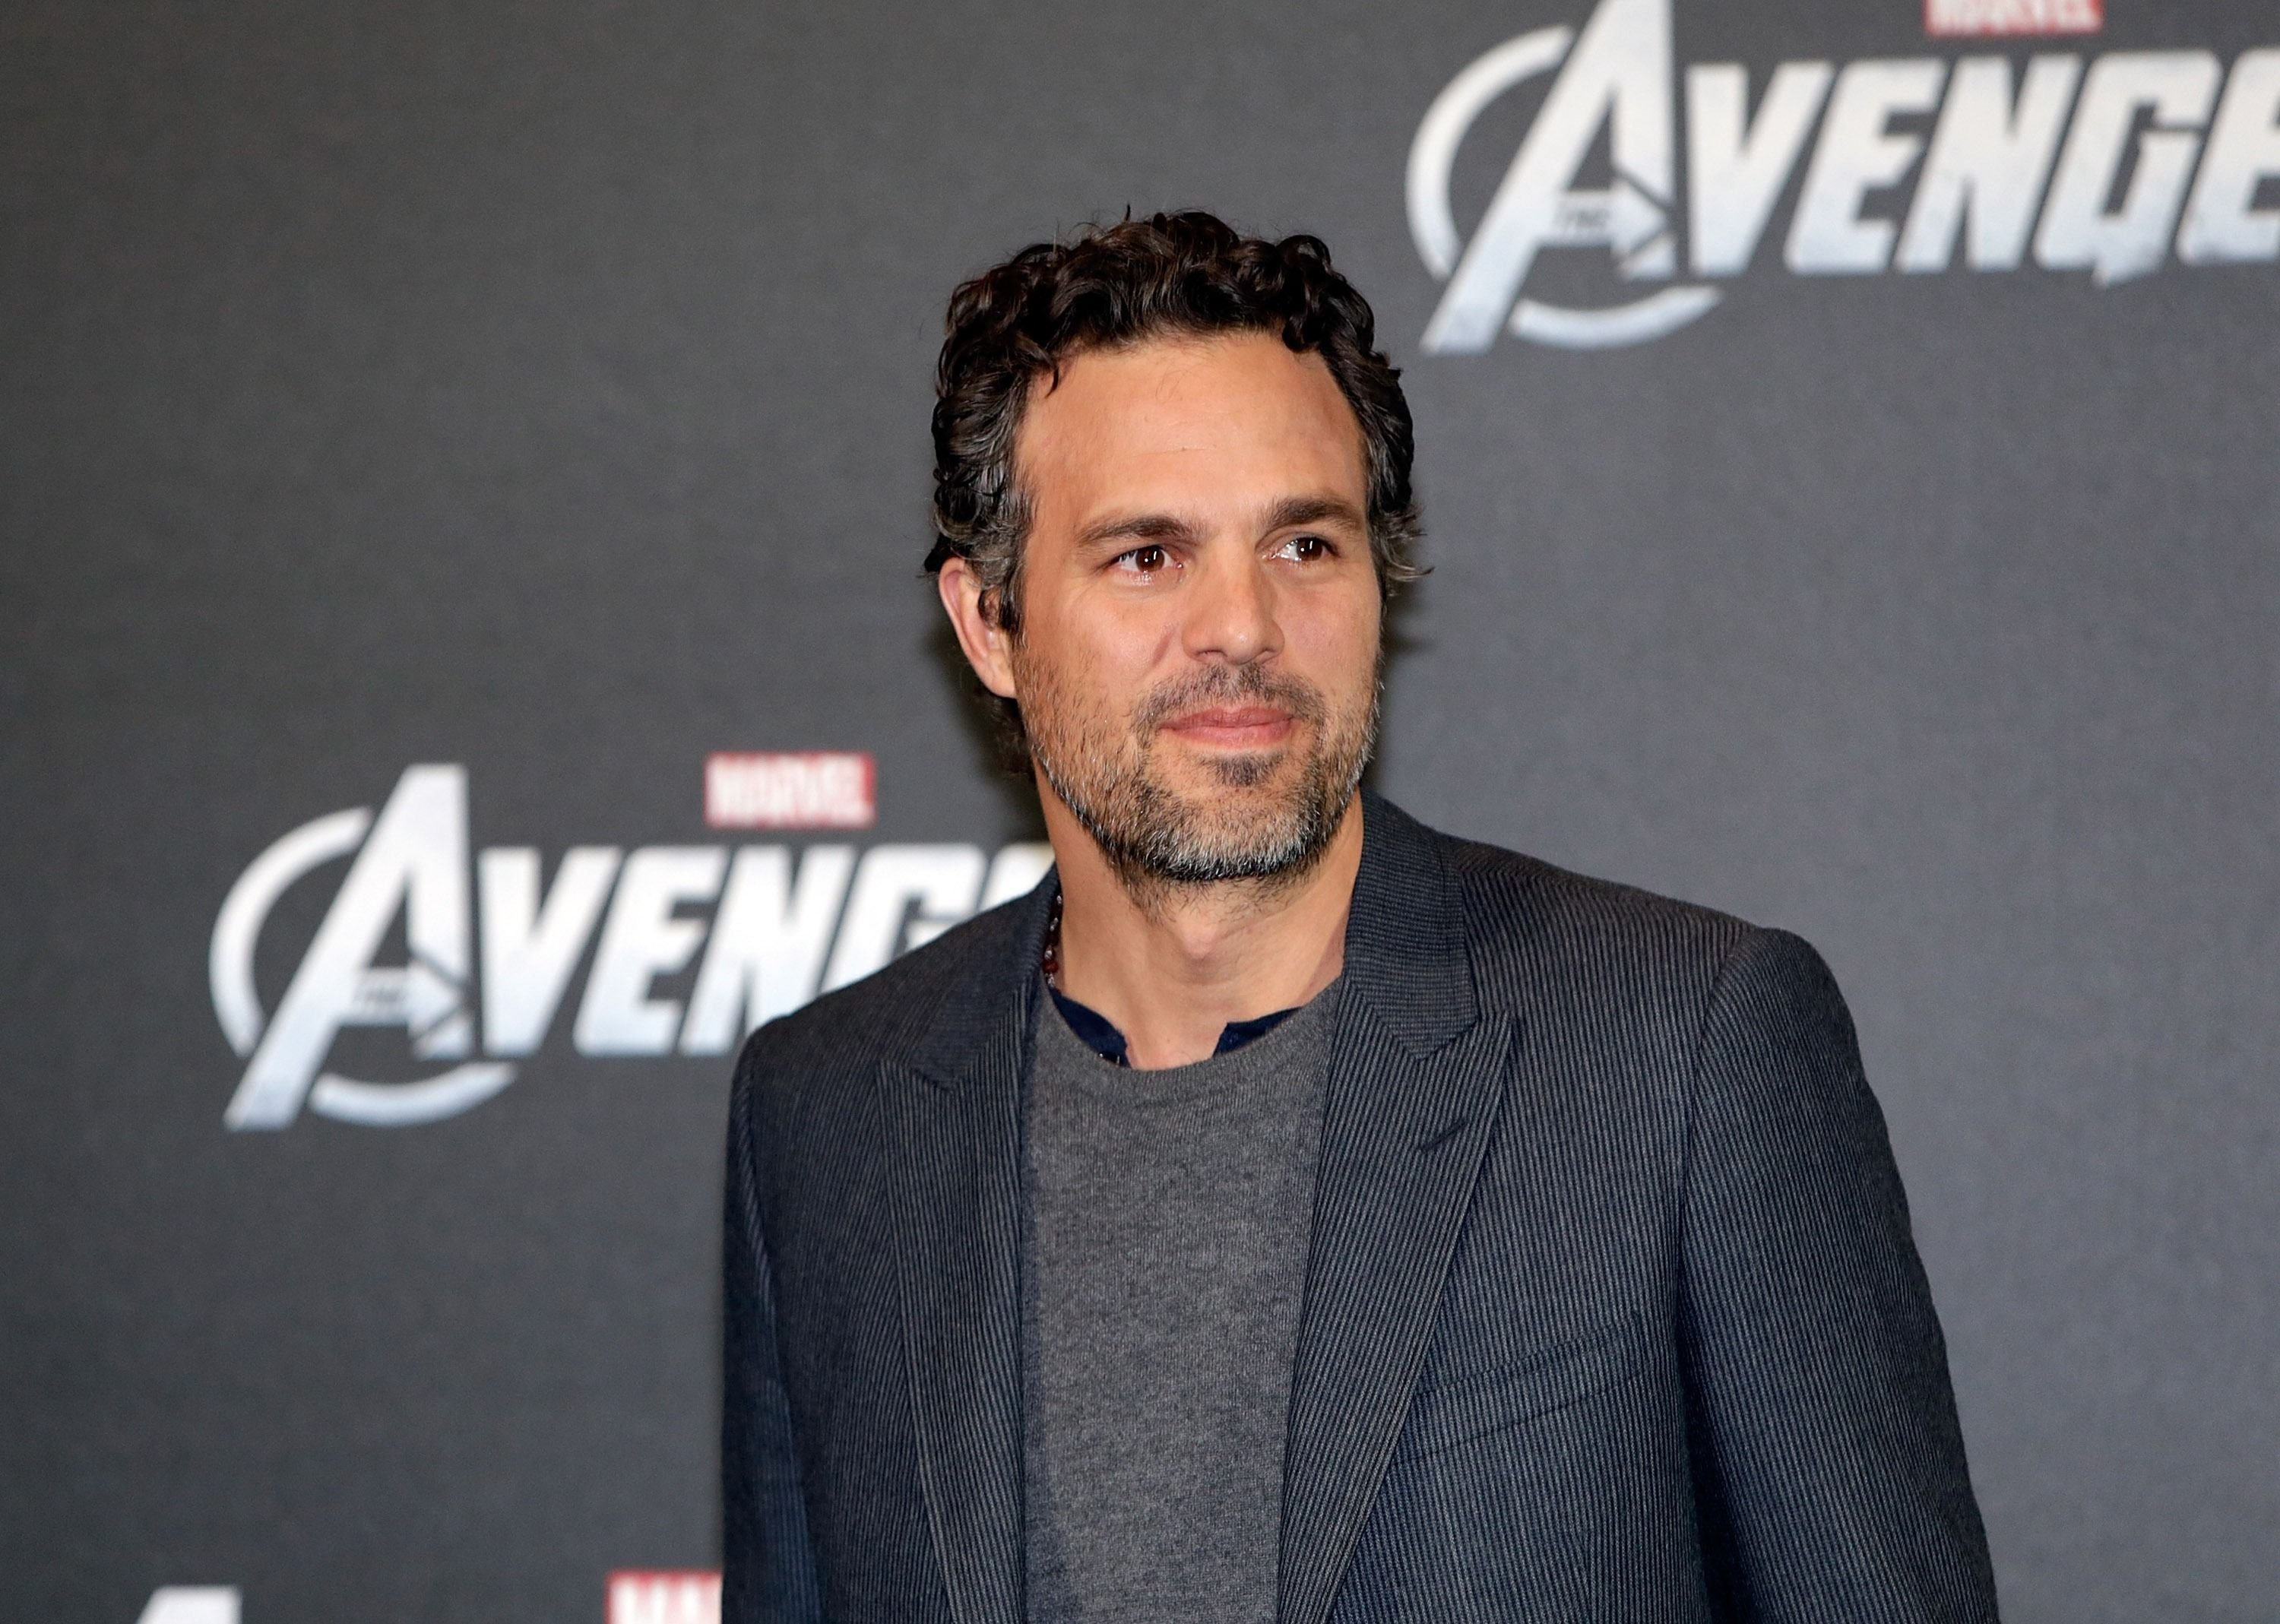 """Mark Ruffalo at the photocall of Marvel's """"The Avengers"""" at Ritz Carlton on April 23, 2012   Photo: Getty Images"""